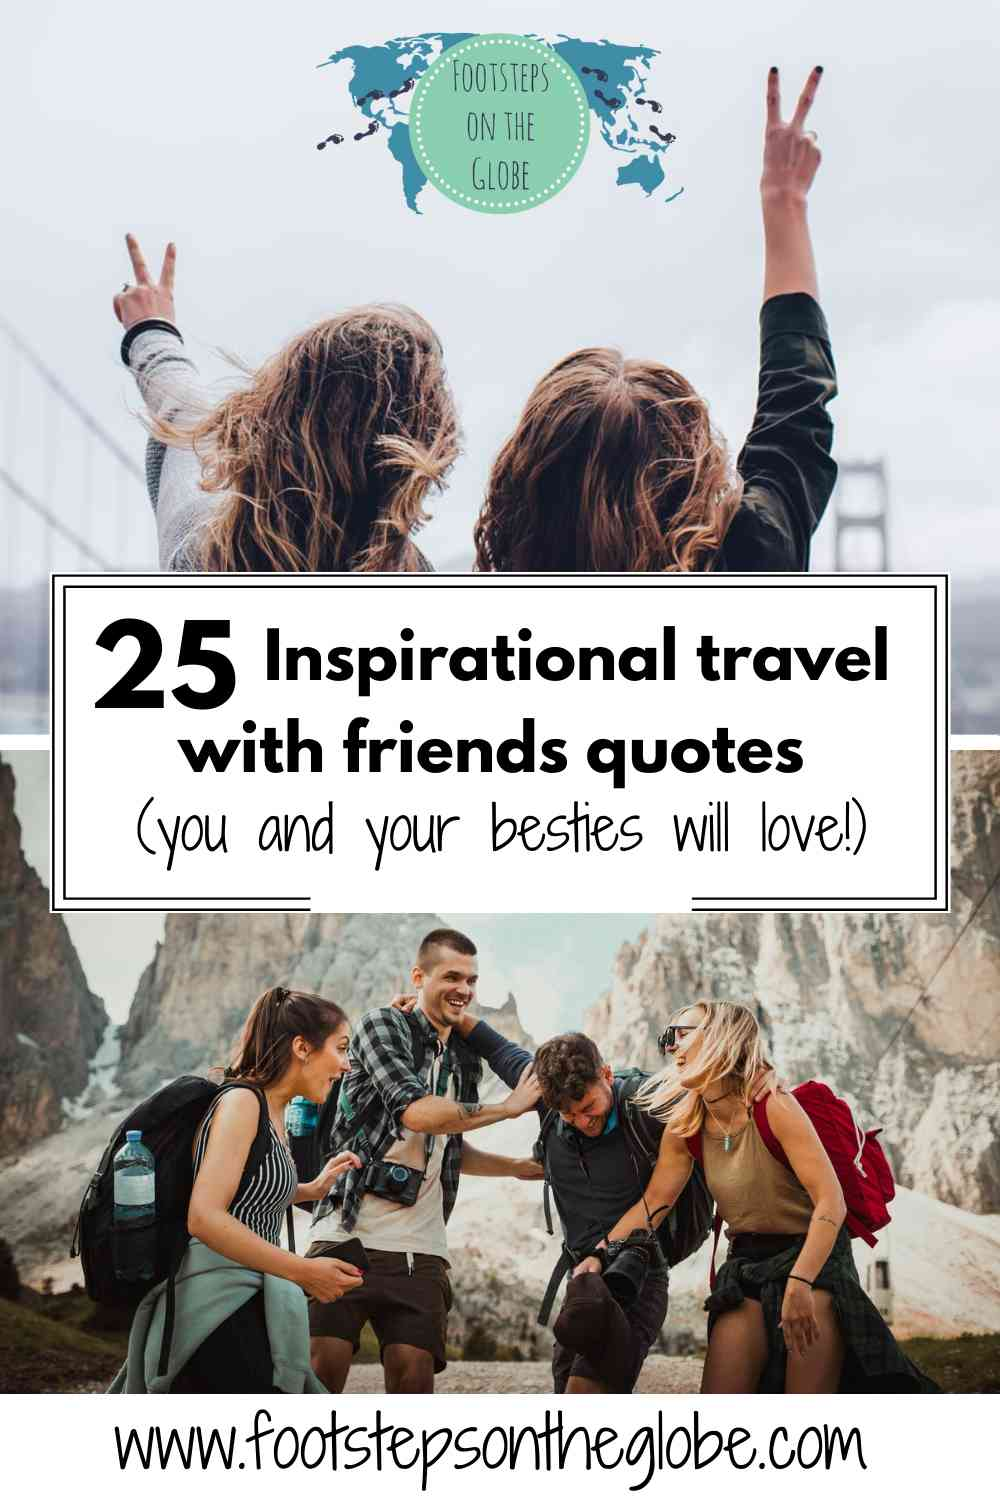 Pinterest image travel with friends quote Footsteps on the Globe